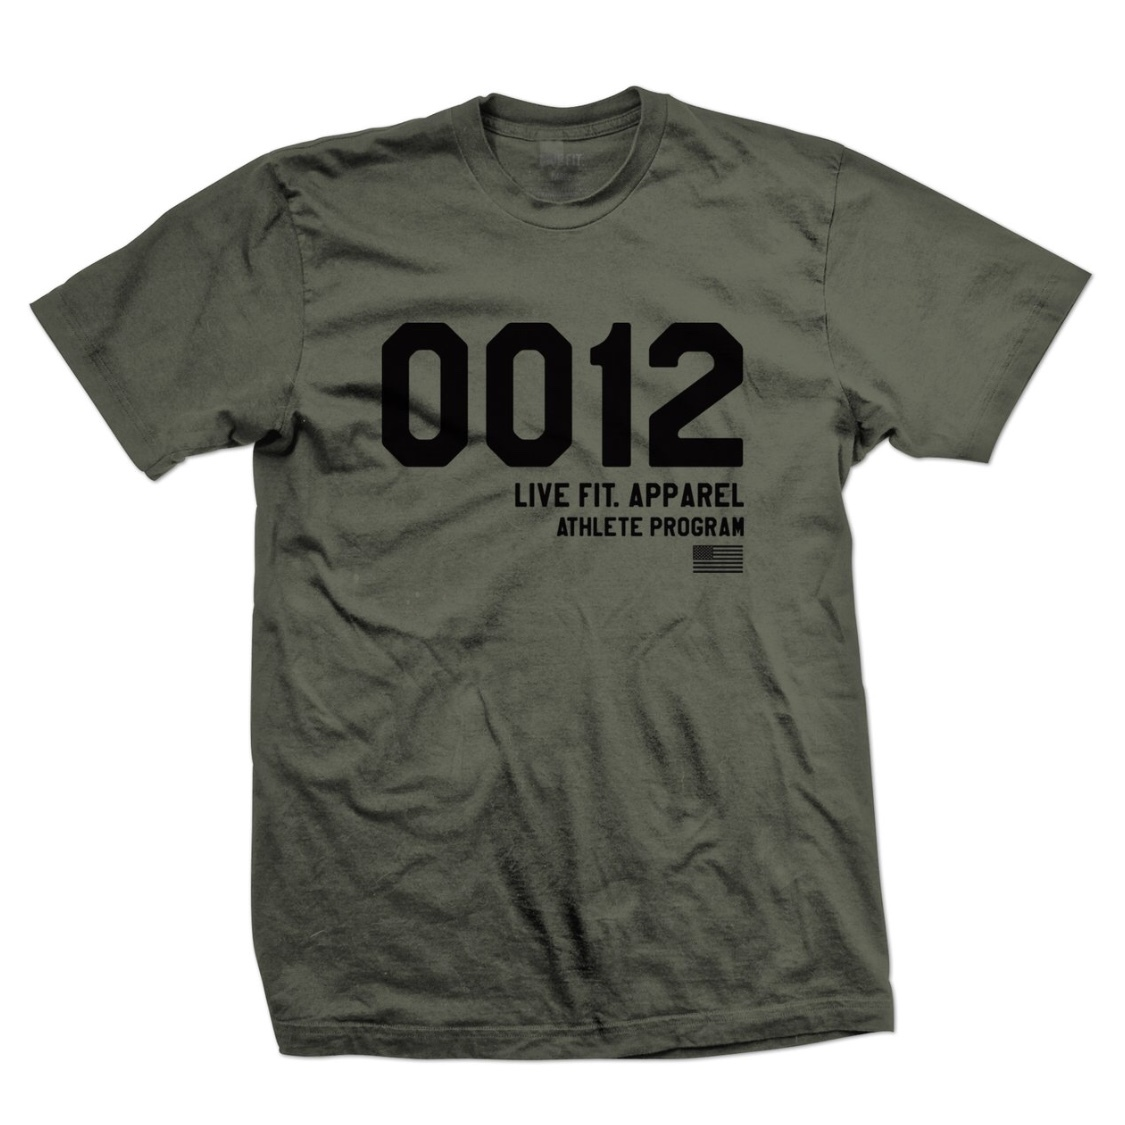 LIVE FIT 0012 Tee - Military Green